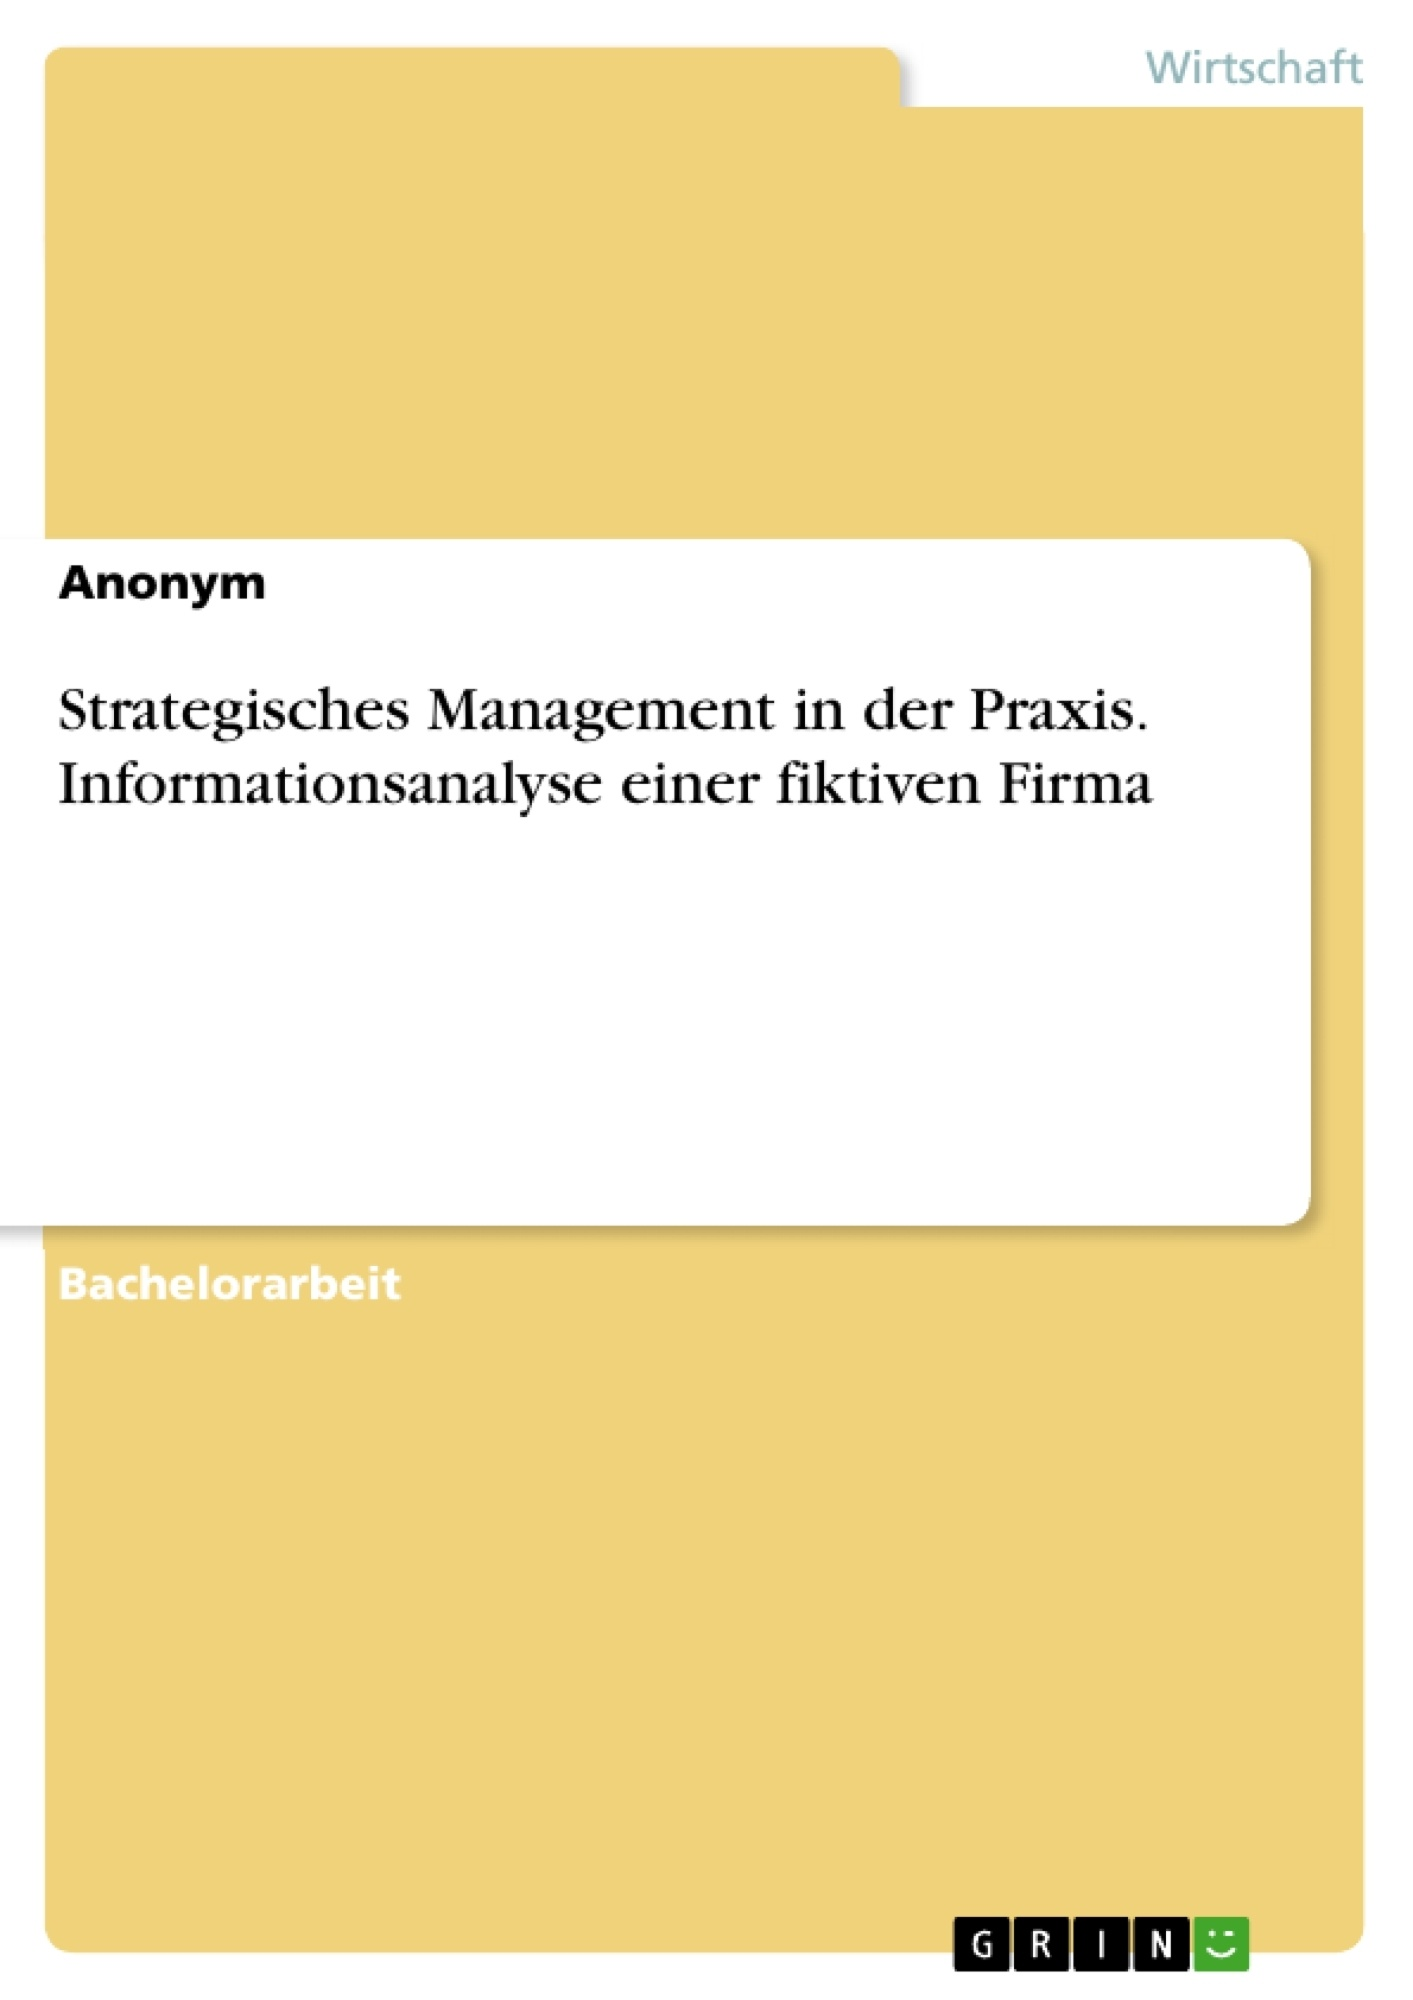 Titel: Strategisches Management in der Praxis. Informationsanalyse einer fiktiven Firma